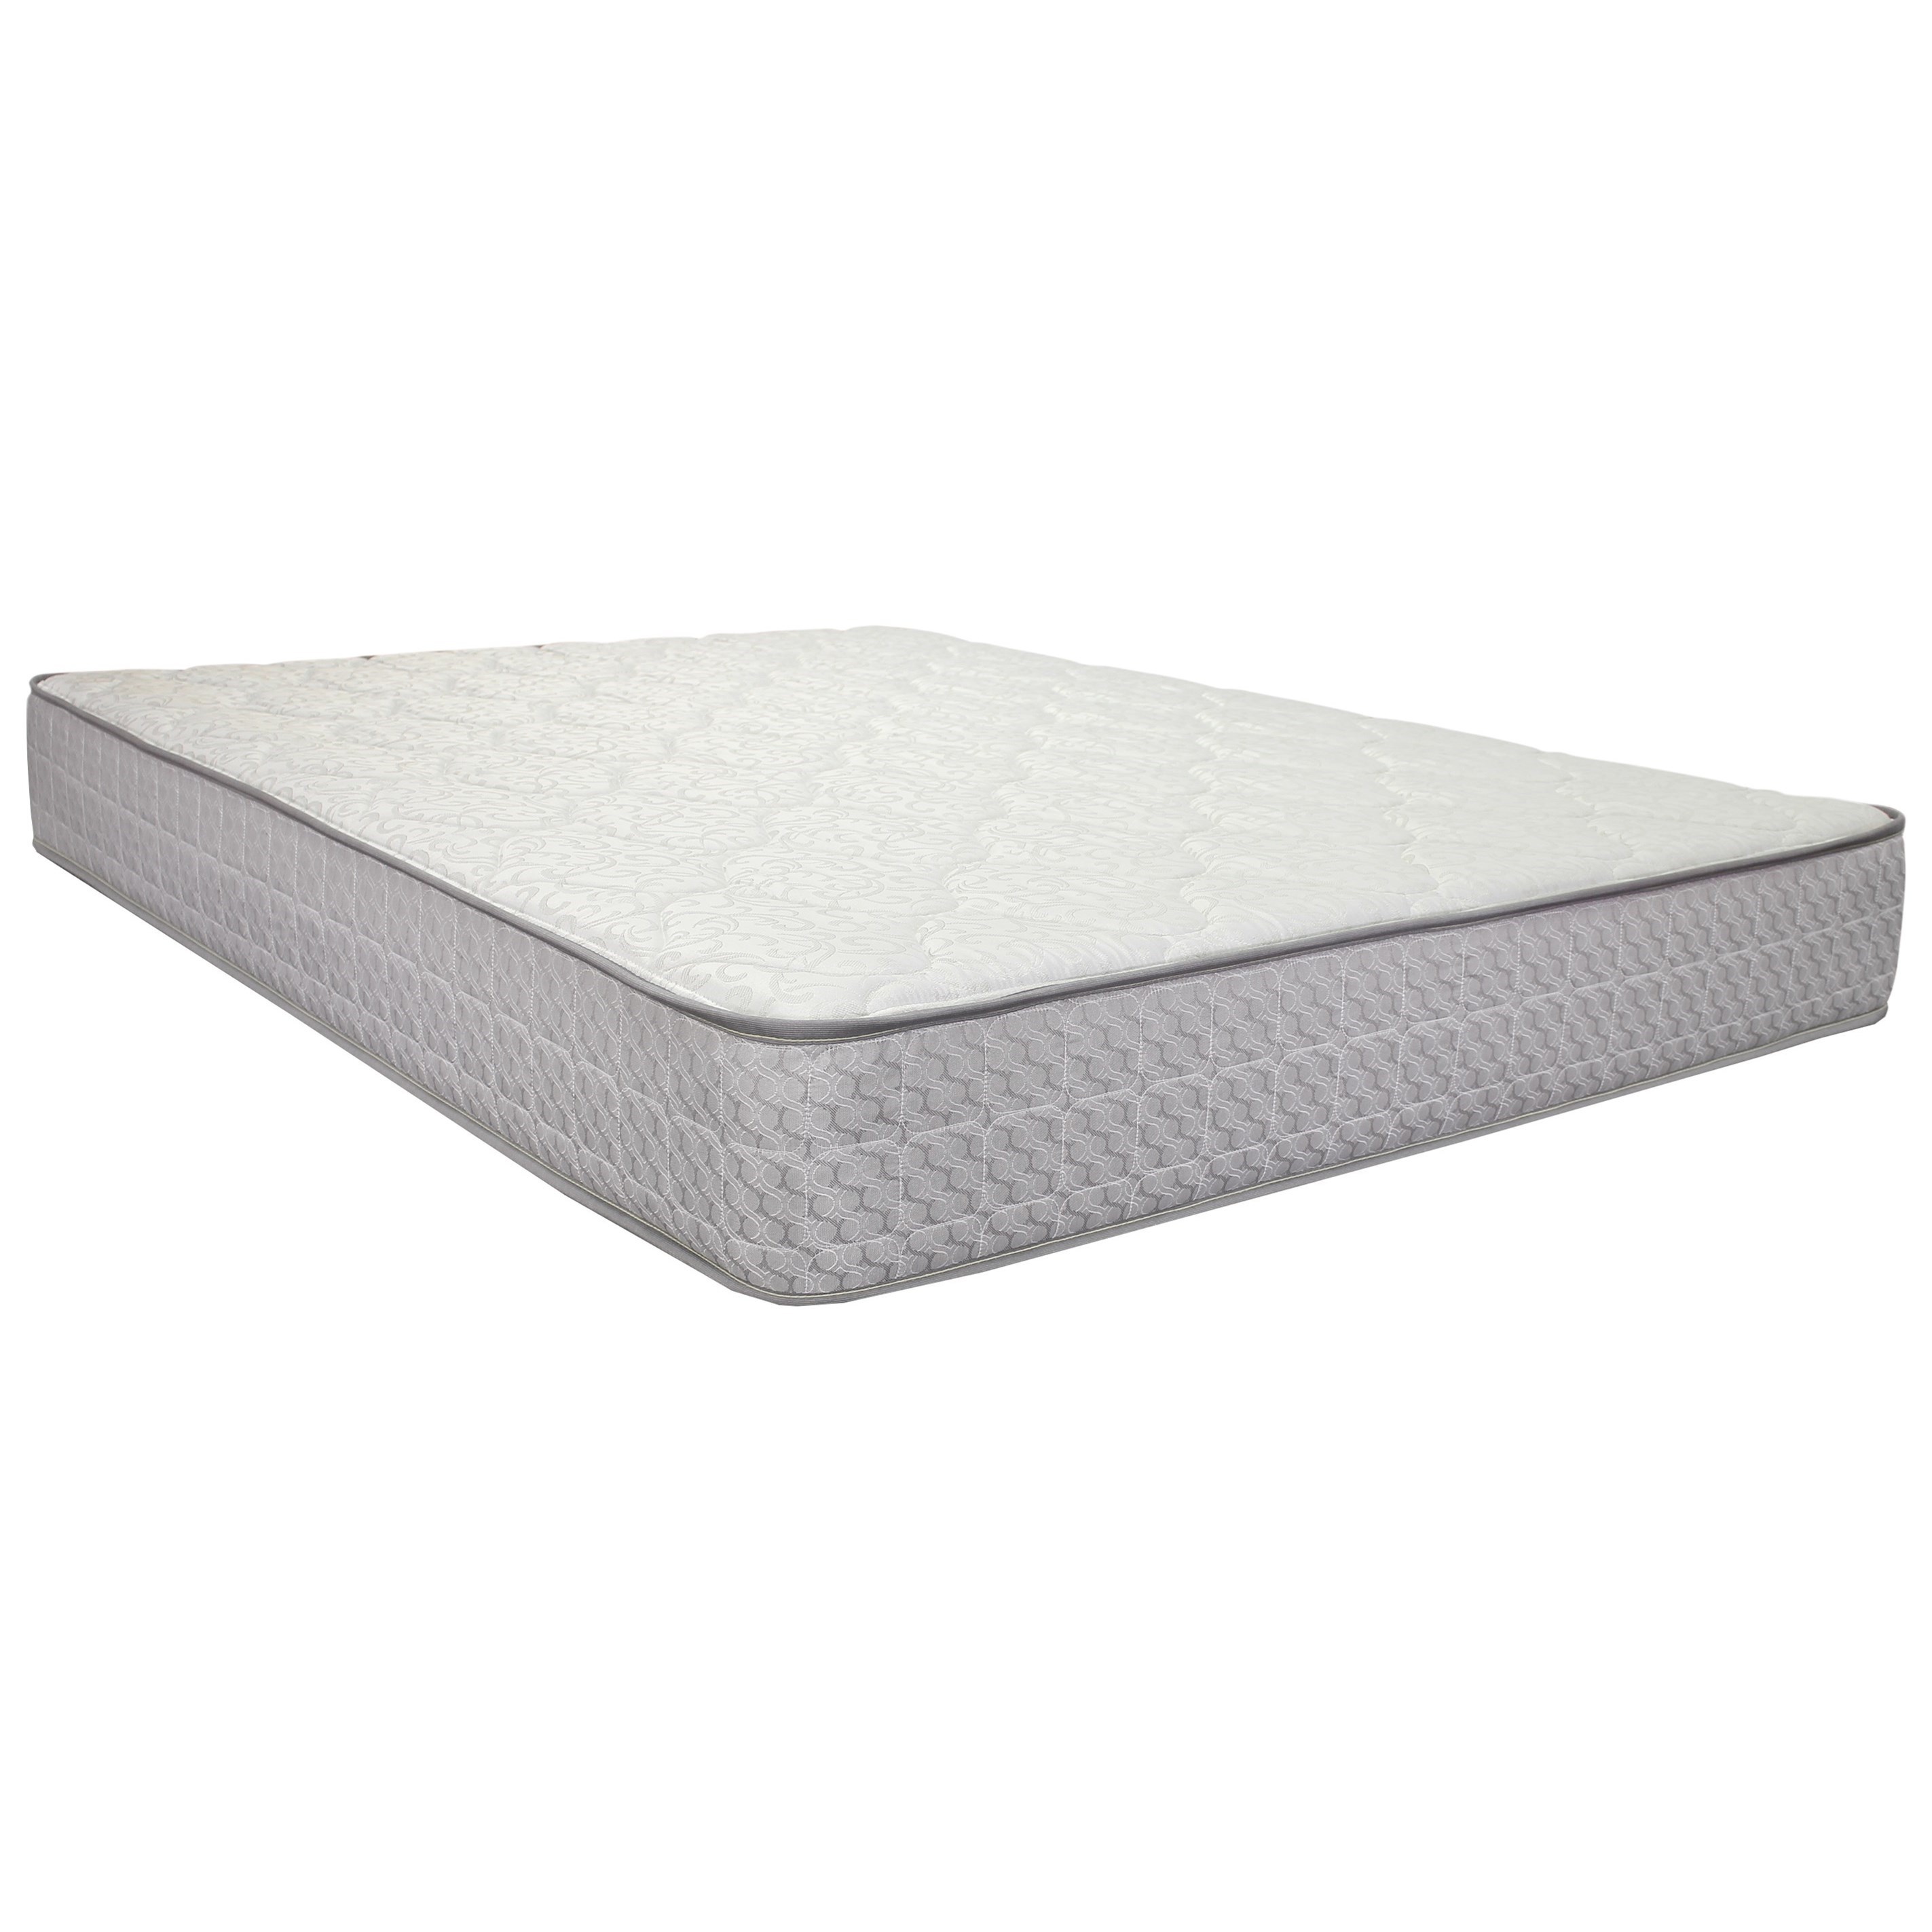 "Corsicana 2000 Merrick Firm Full 9 1/2"" Firm Two Sided Mattress - Item Number: 2000-F"